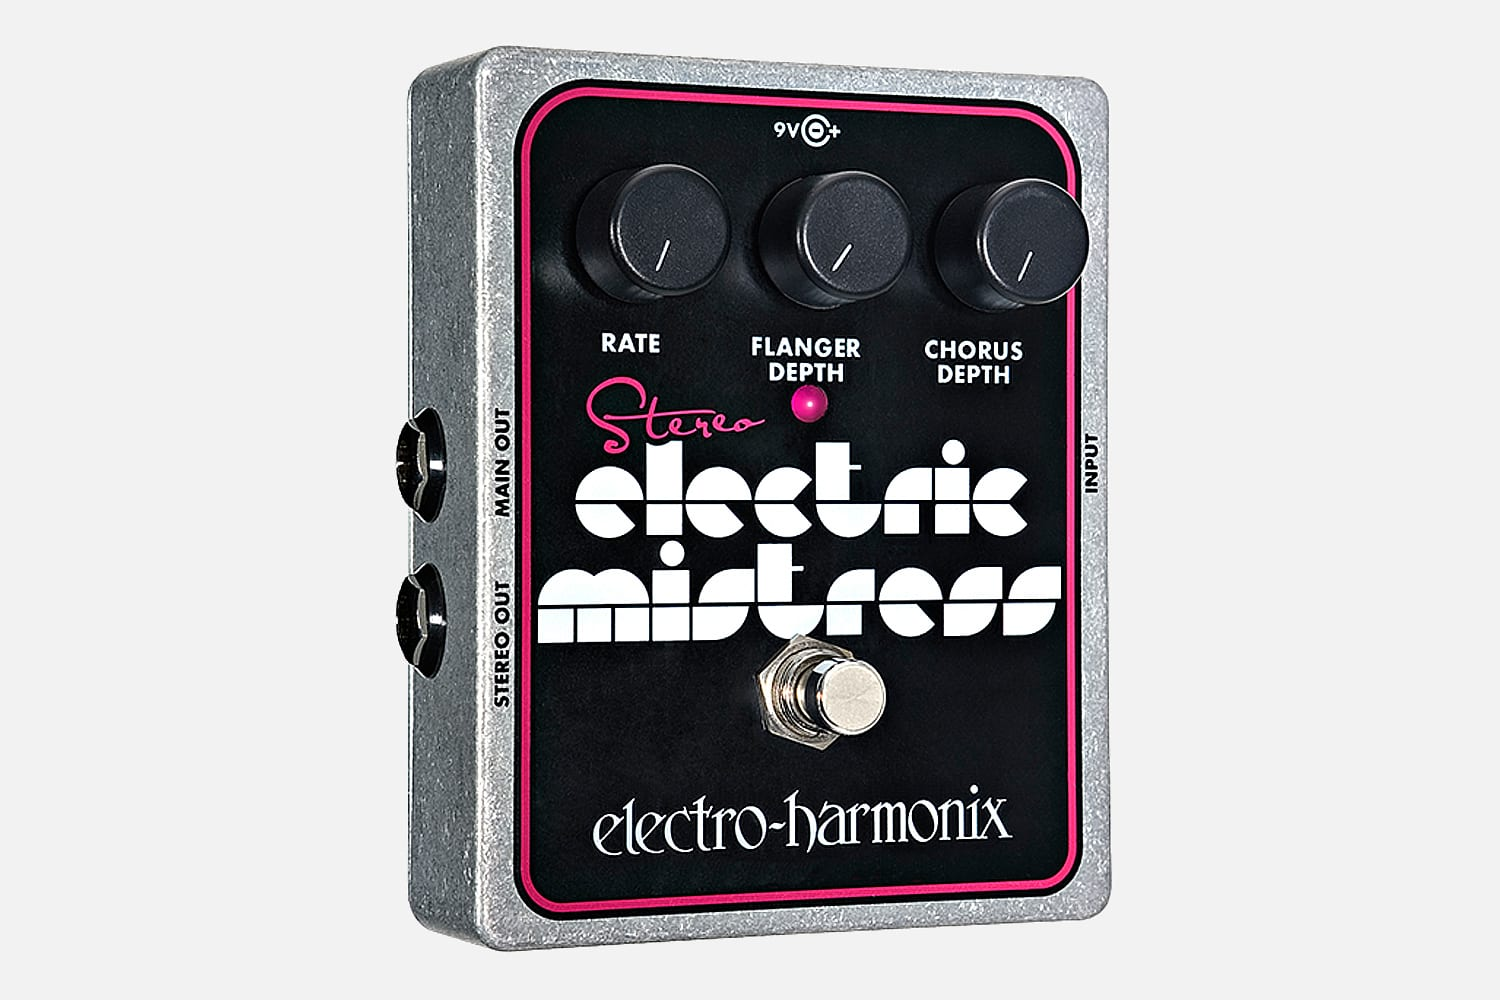 Stereo Electric Mistress